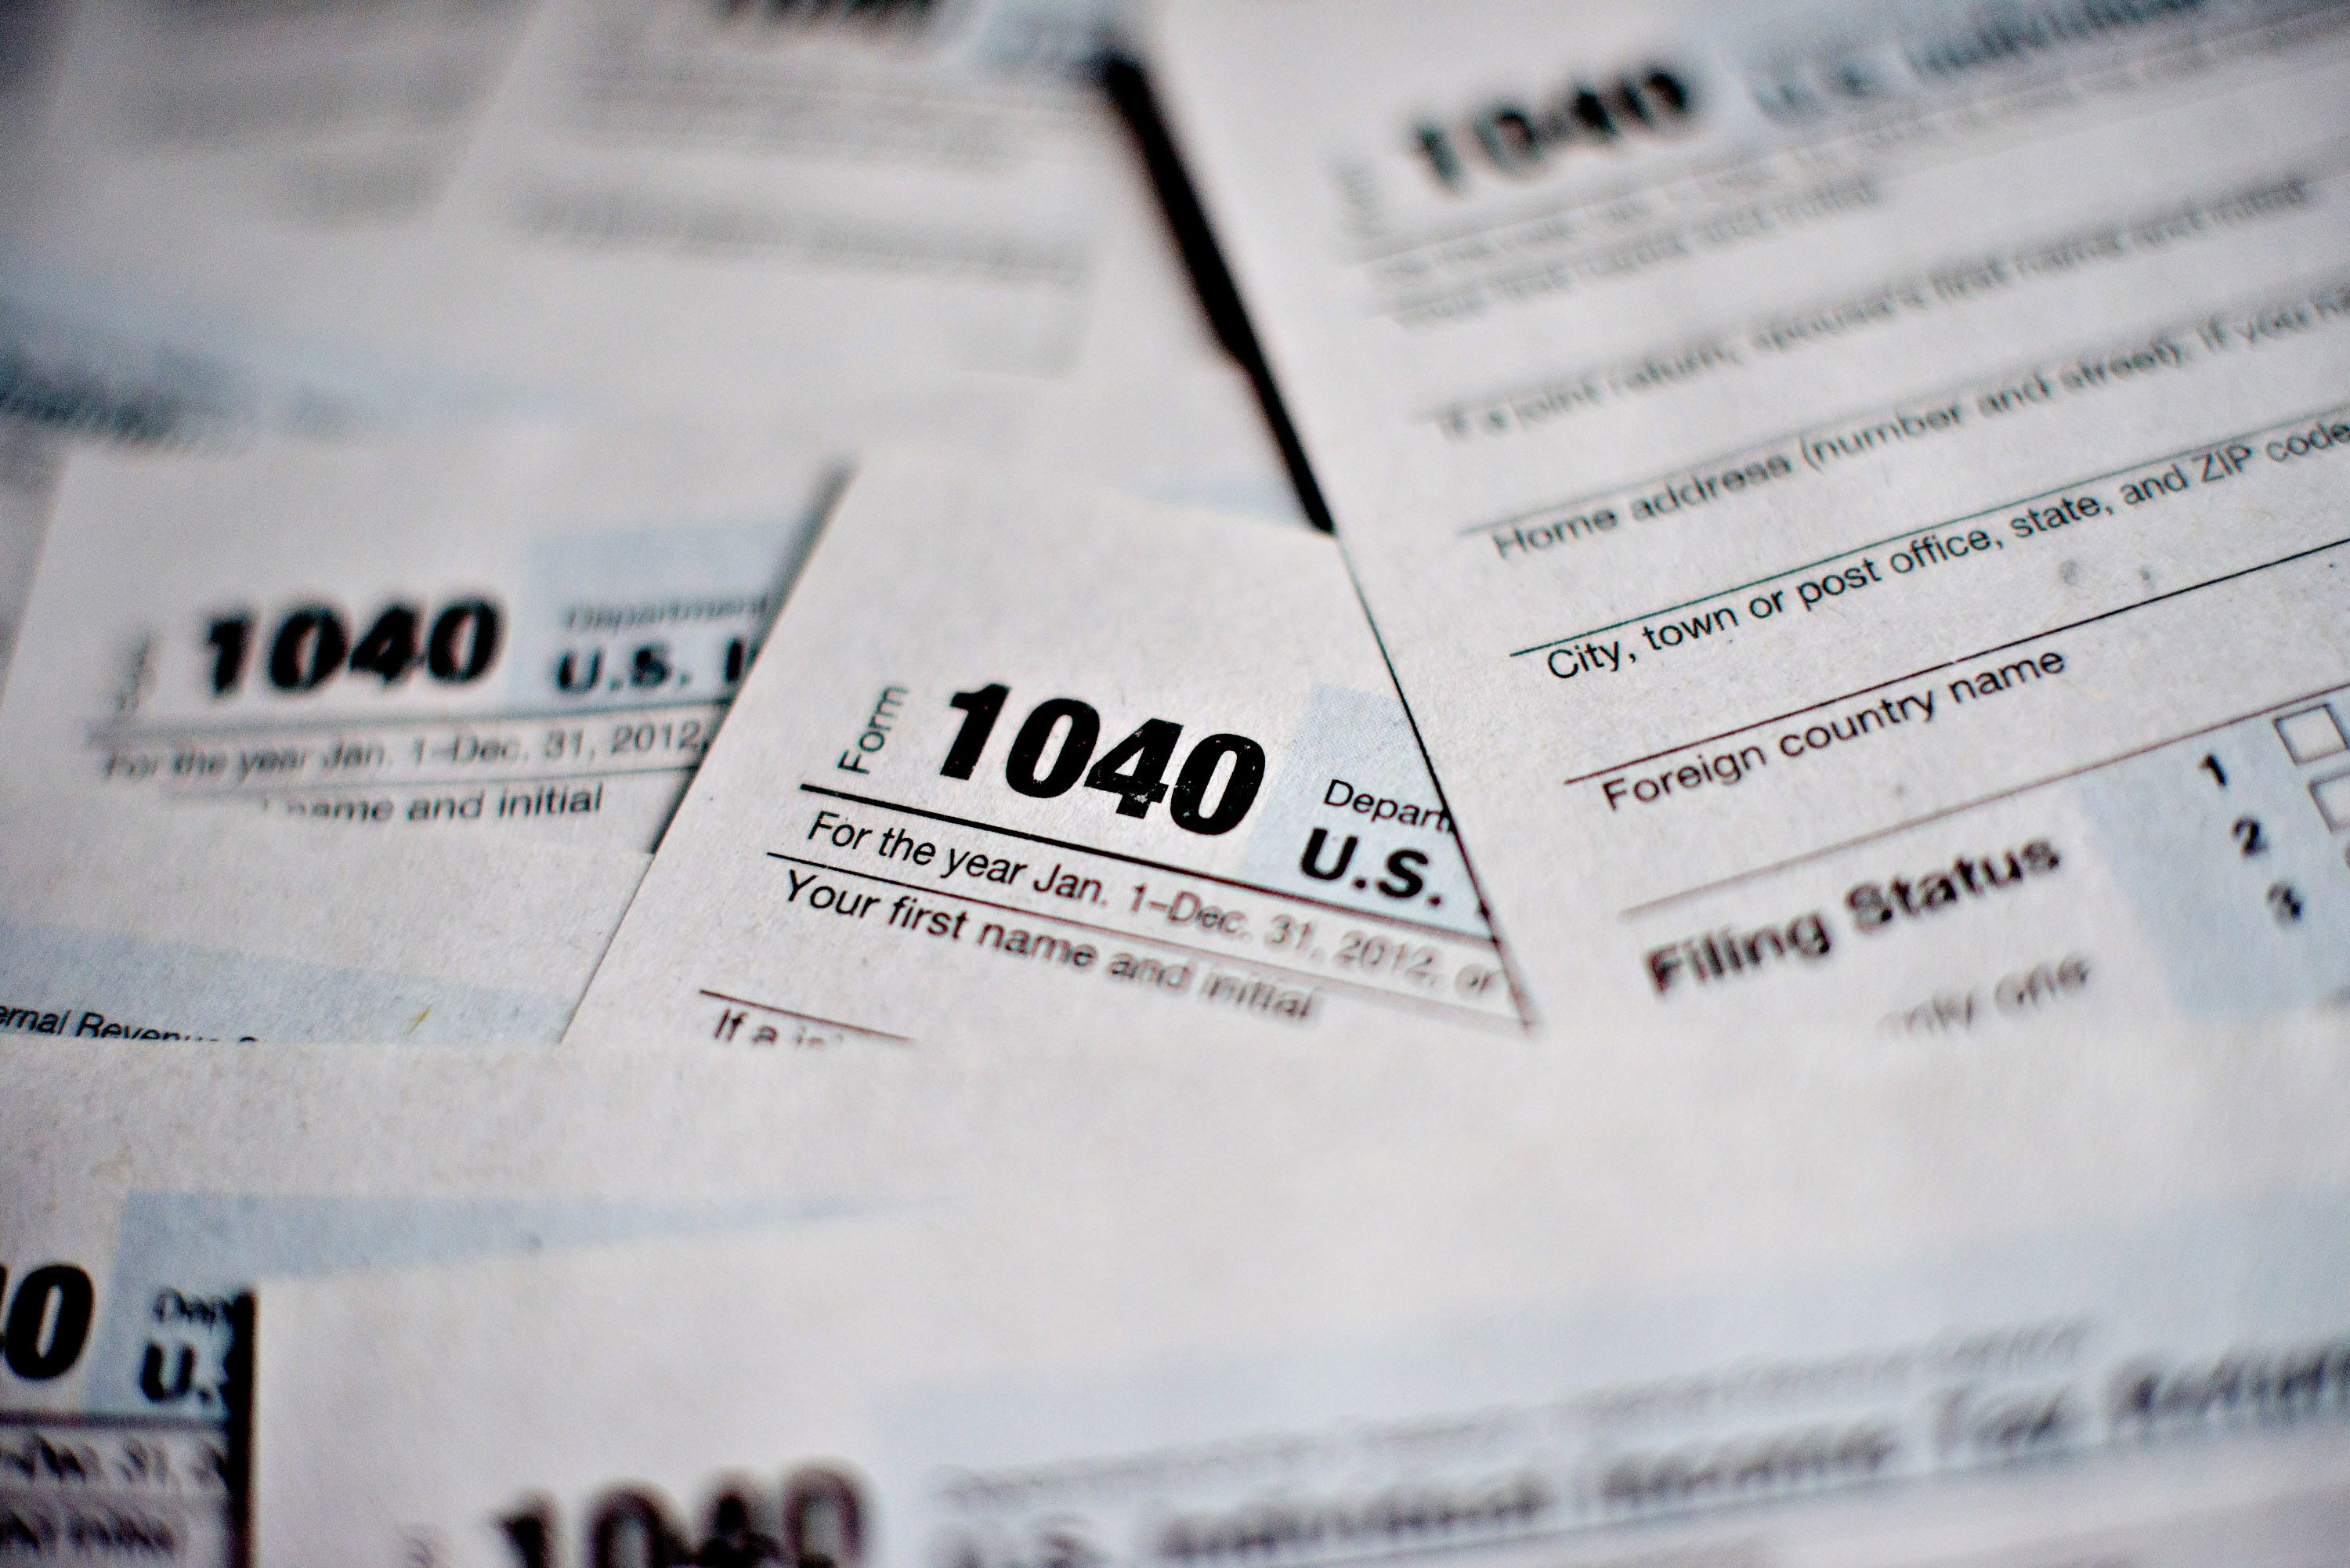 IRS adds staffing to meet Presidents Day weekend rush